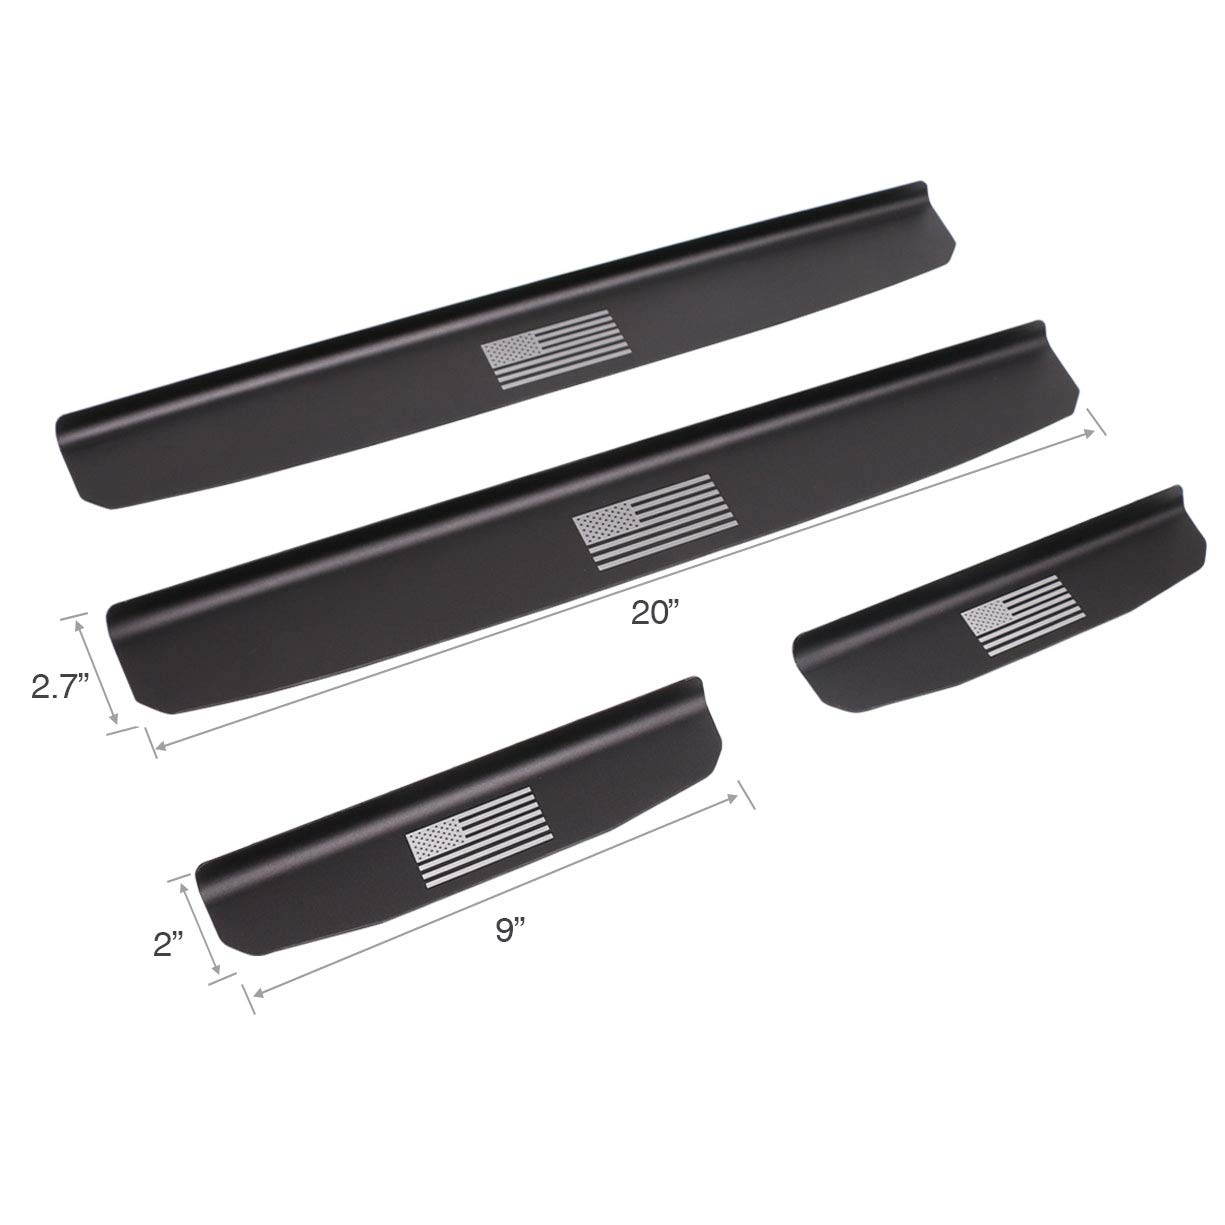 Silver 4Pcs VXAR Door Sill Protector Entry Guard Stainless Steel Scuff Plate for 2007-2017 Jeep Wrangler JK